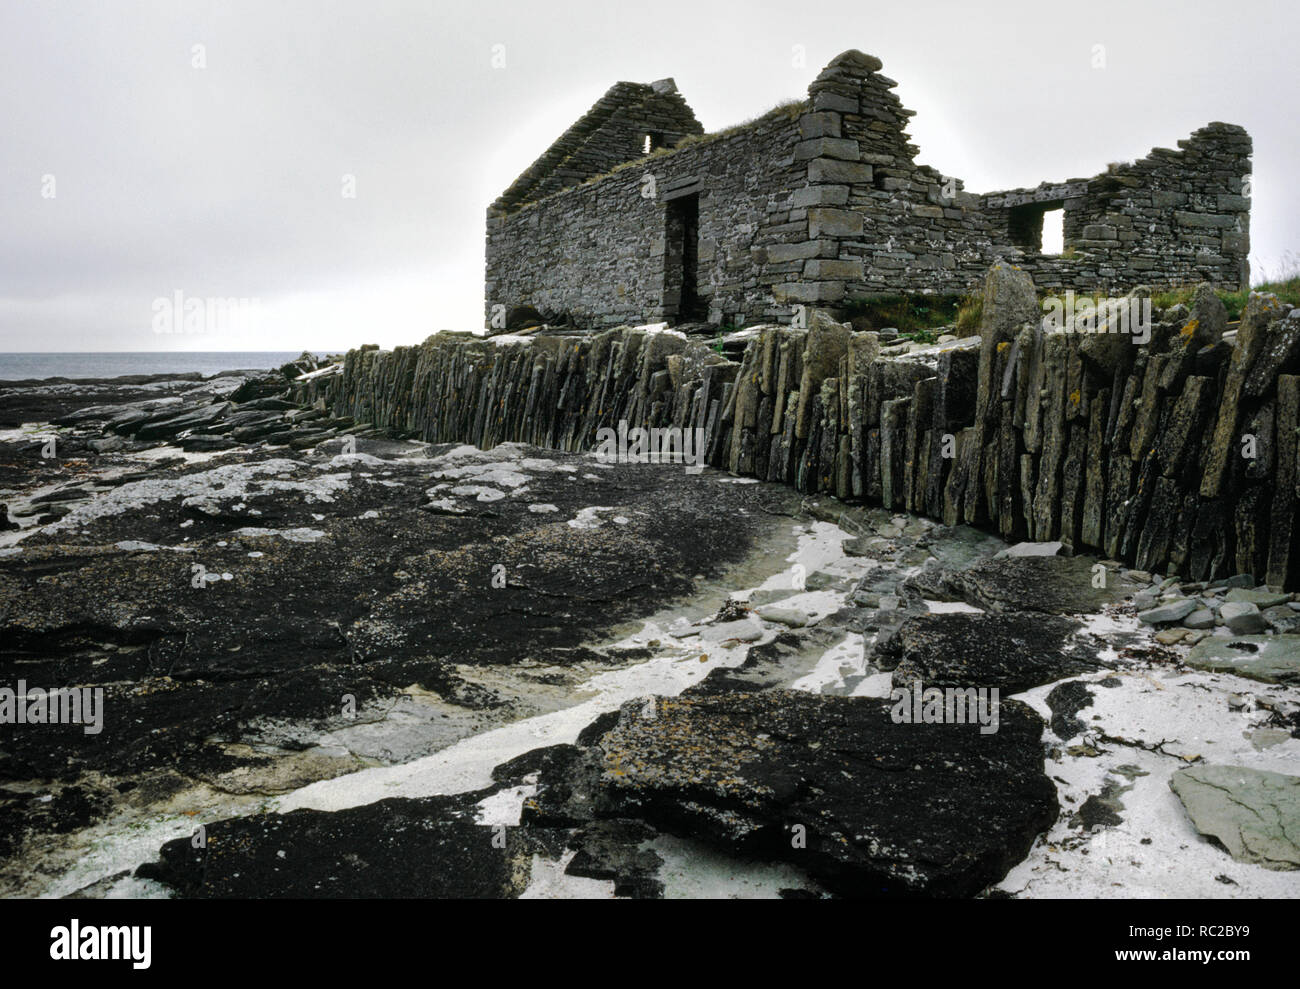 Hookin Water Mill, South Wick, Papa Westray, Orkney. Ruined 19th century undershot mill used for milling oats. Built adjacent to beach. - Stock Image